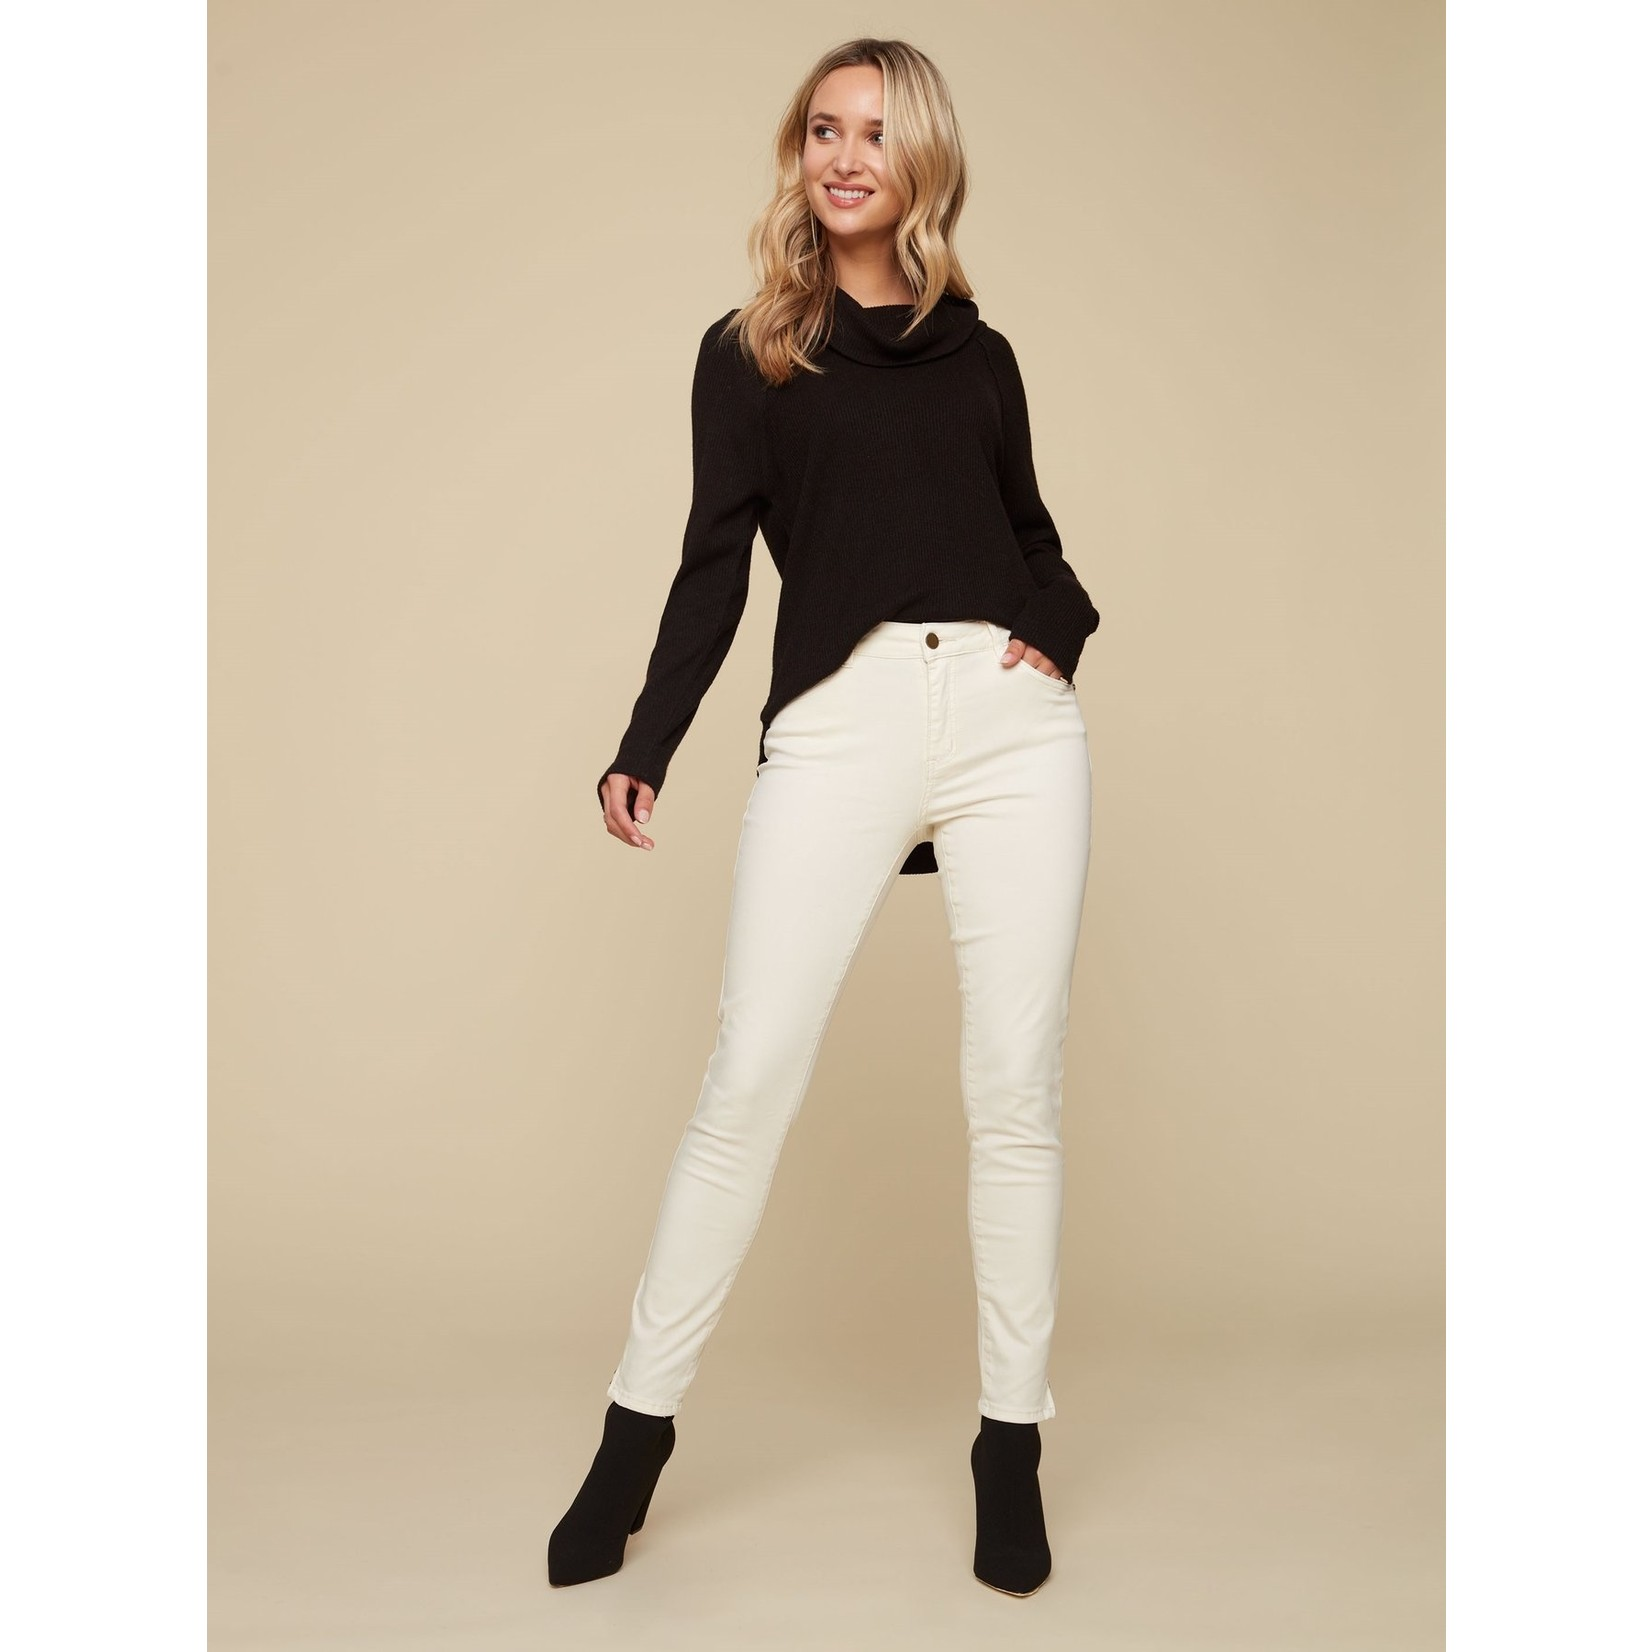 Charlie B Ankle Pant with Zip